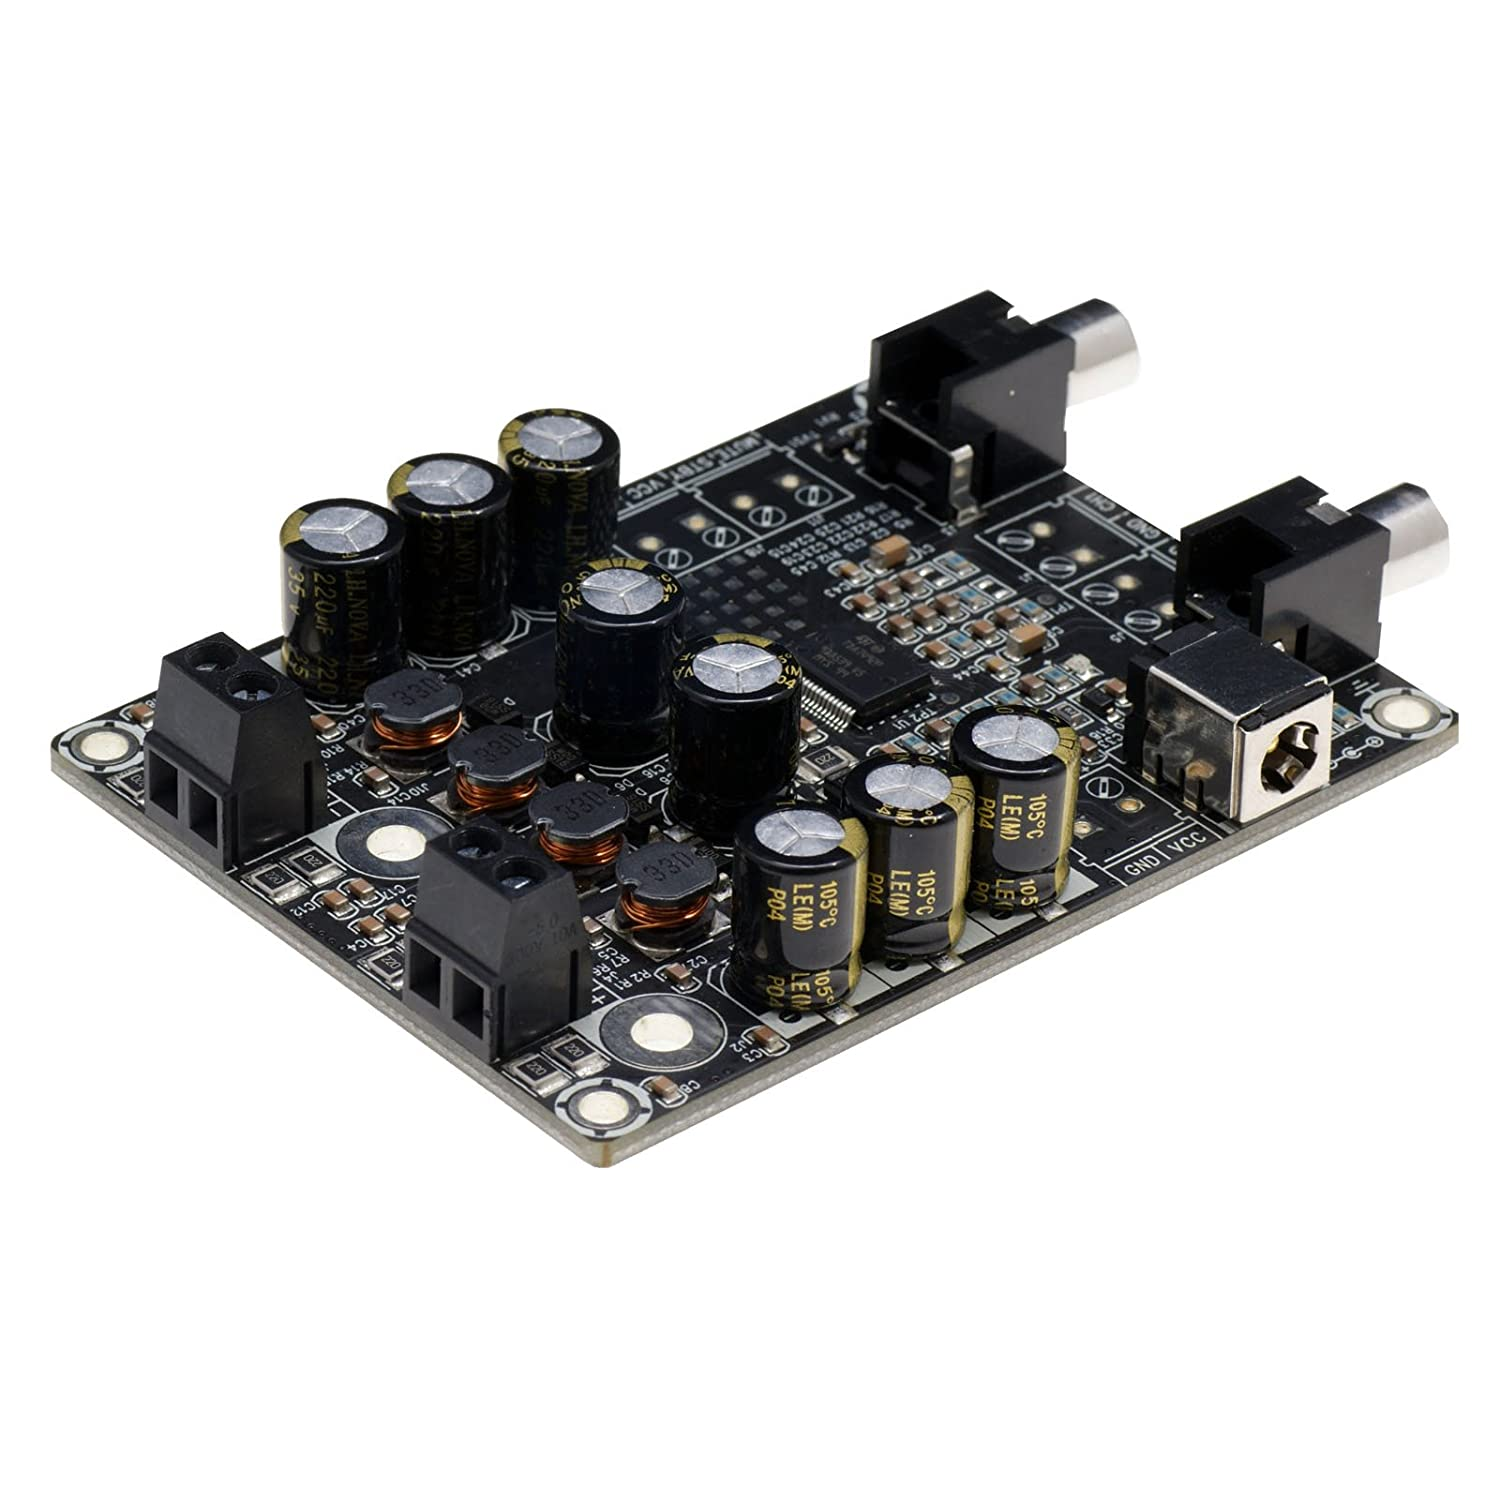 25 Watt Mono Classd Audio Power Amplifier Circuit 2 X 25watt Class D Board Tda7492p Car Electronics